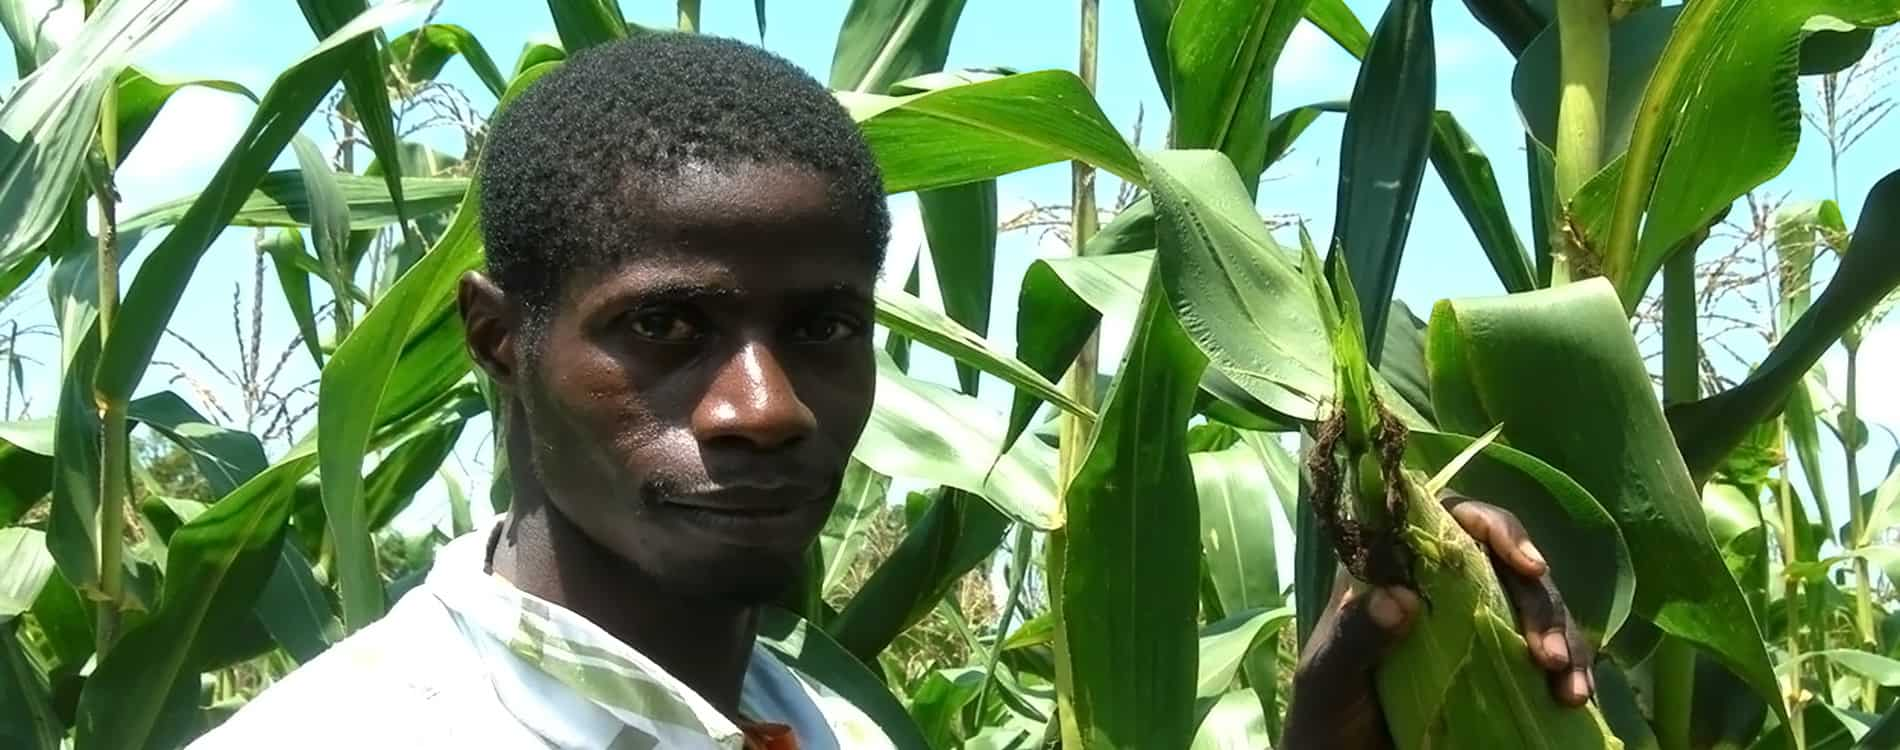 Maize project supports partners in COVID-19 response